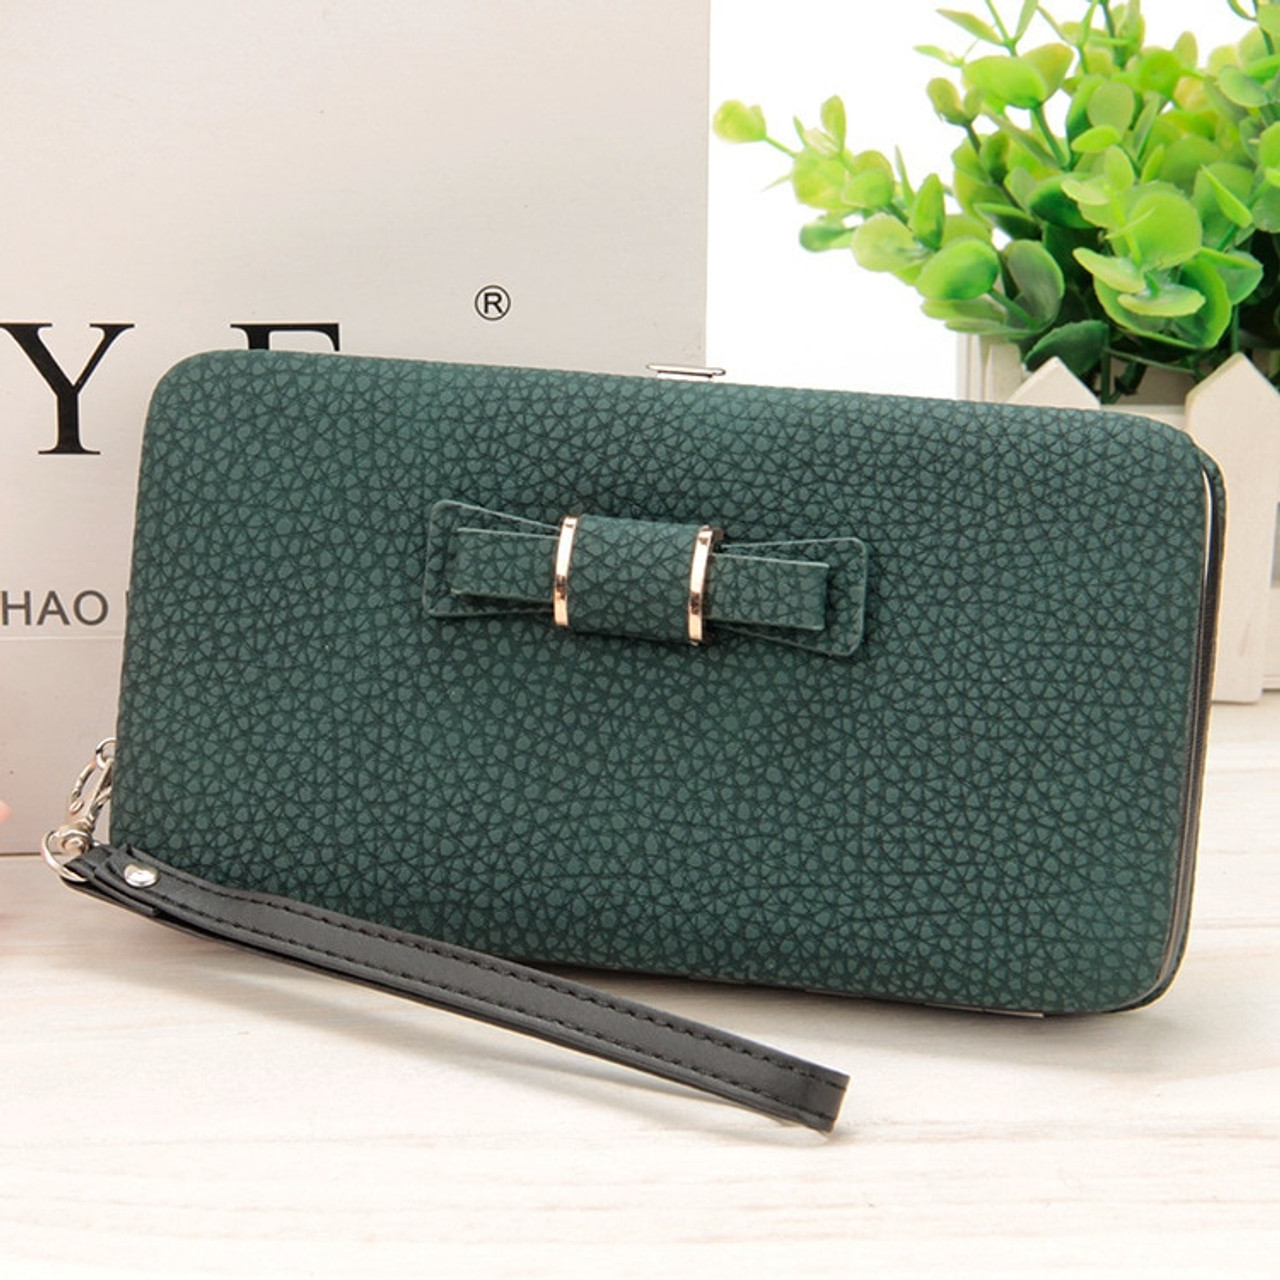 42ee98bbe3 ... Fashion Female wallets High-quality PU Leather Wallet Women Long Big  Capacity Clutch Card Holder ...